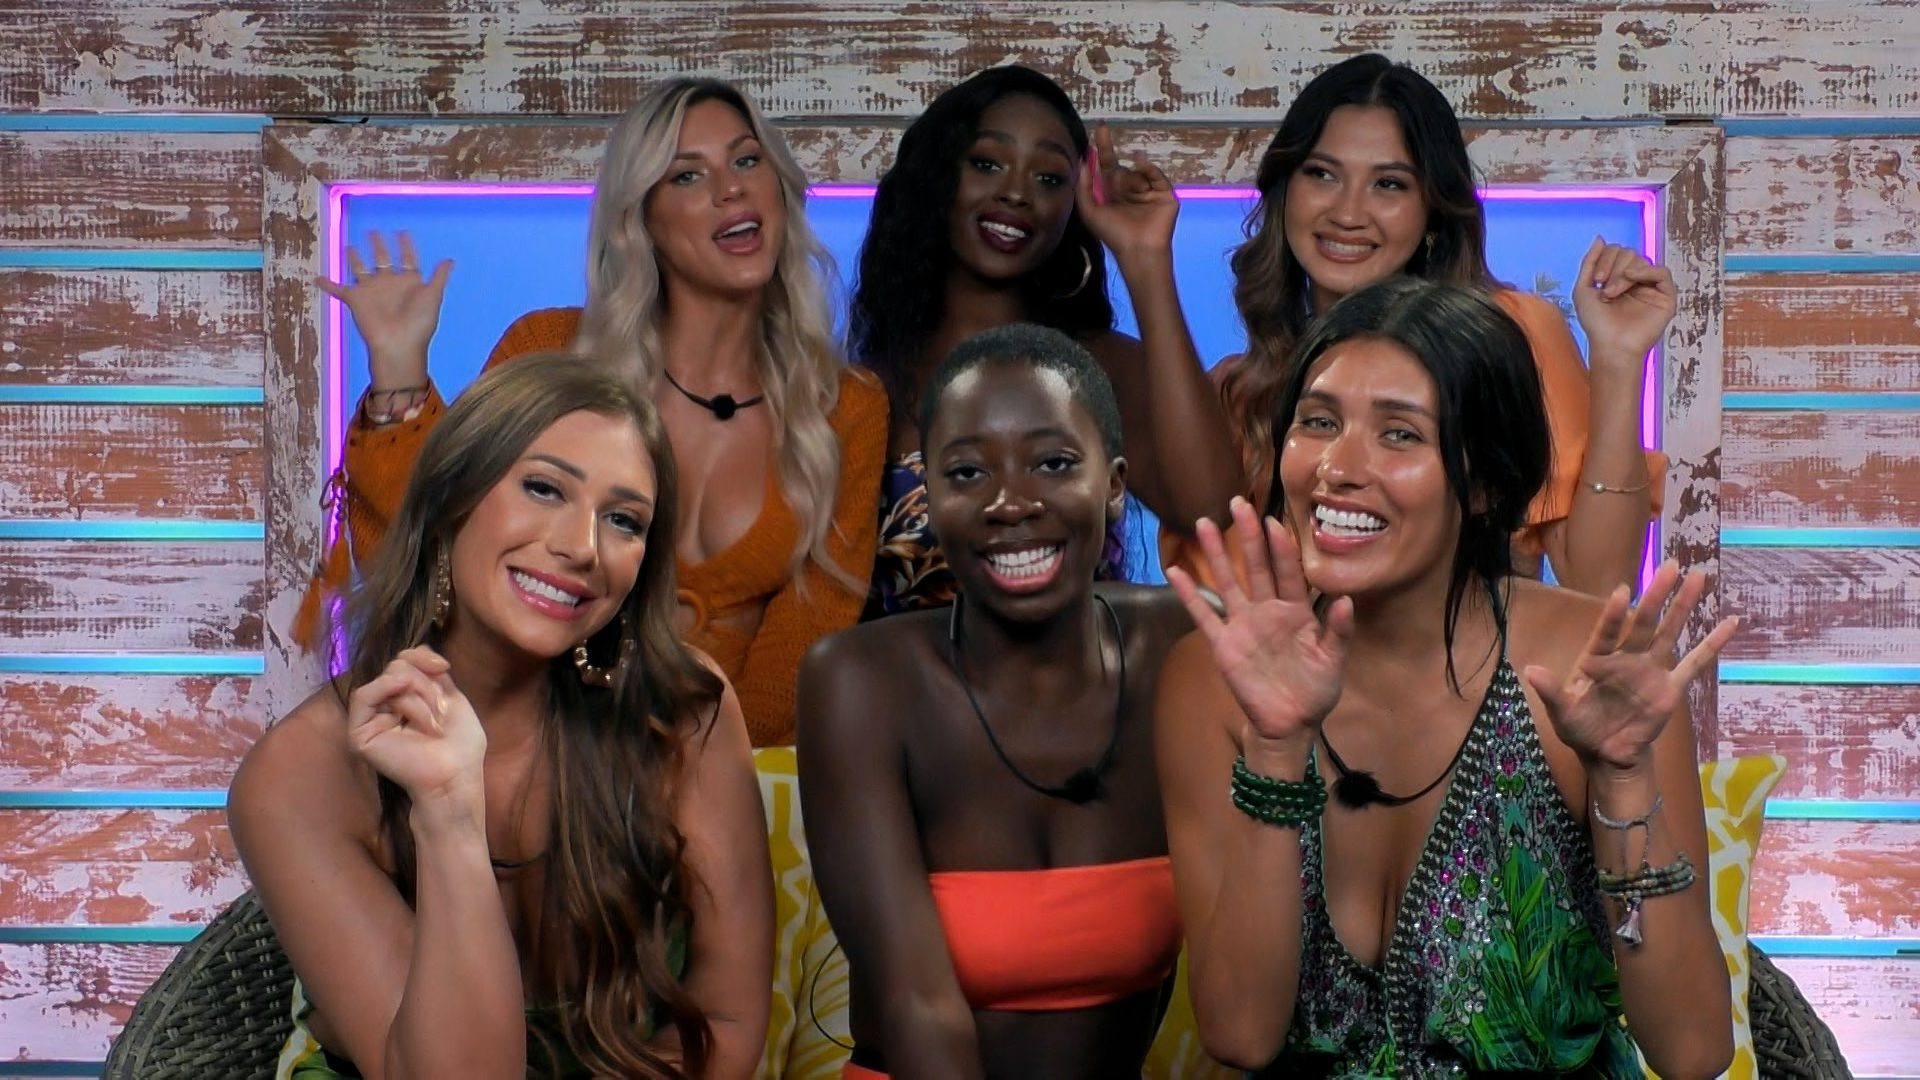 How And Where To Watch Love Island USA Season 3? Your Full Guide